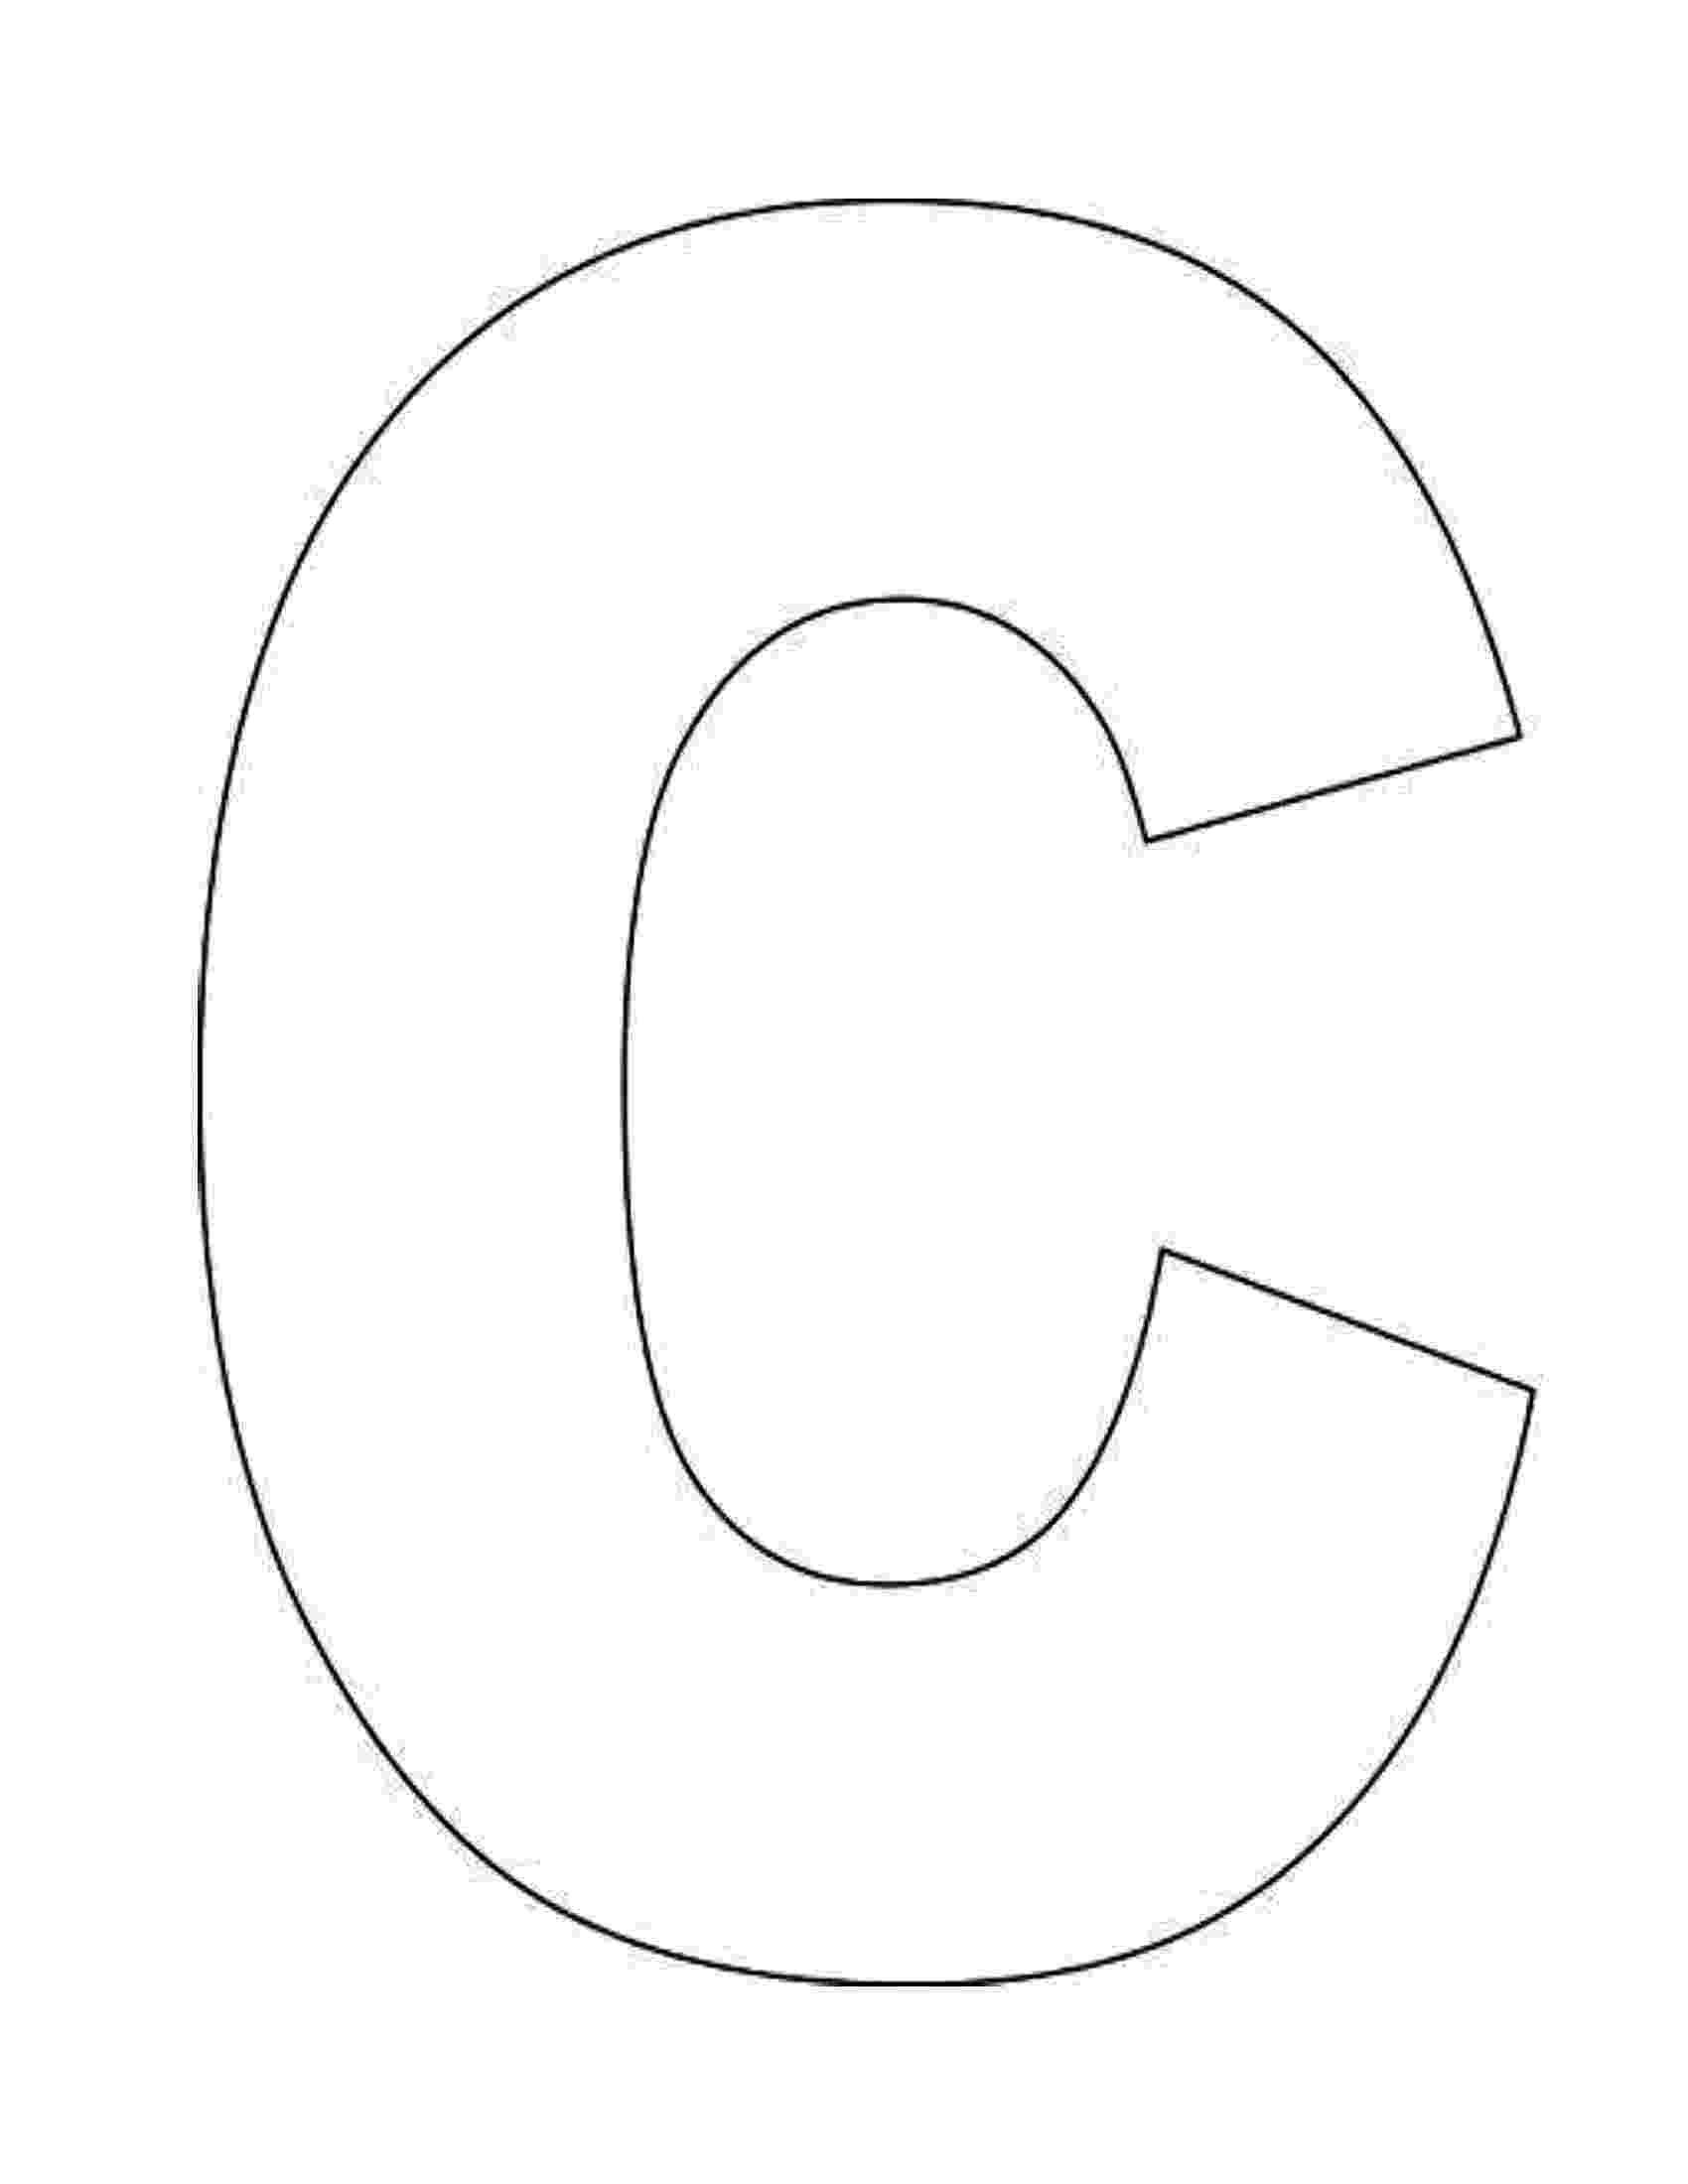 letter c coloring page c is for cat coloring page free printable coloring pages letter page c coloring